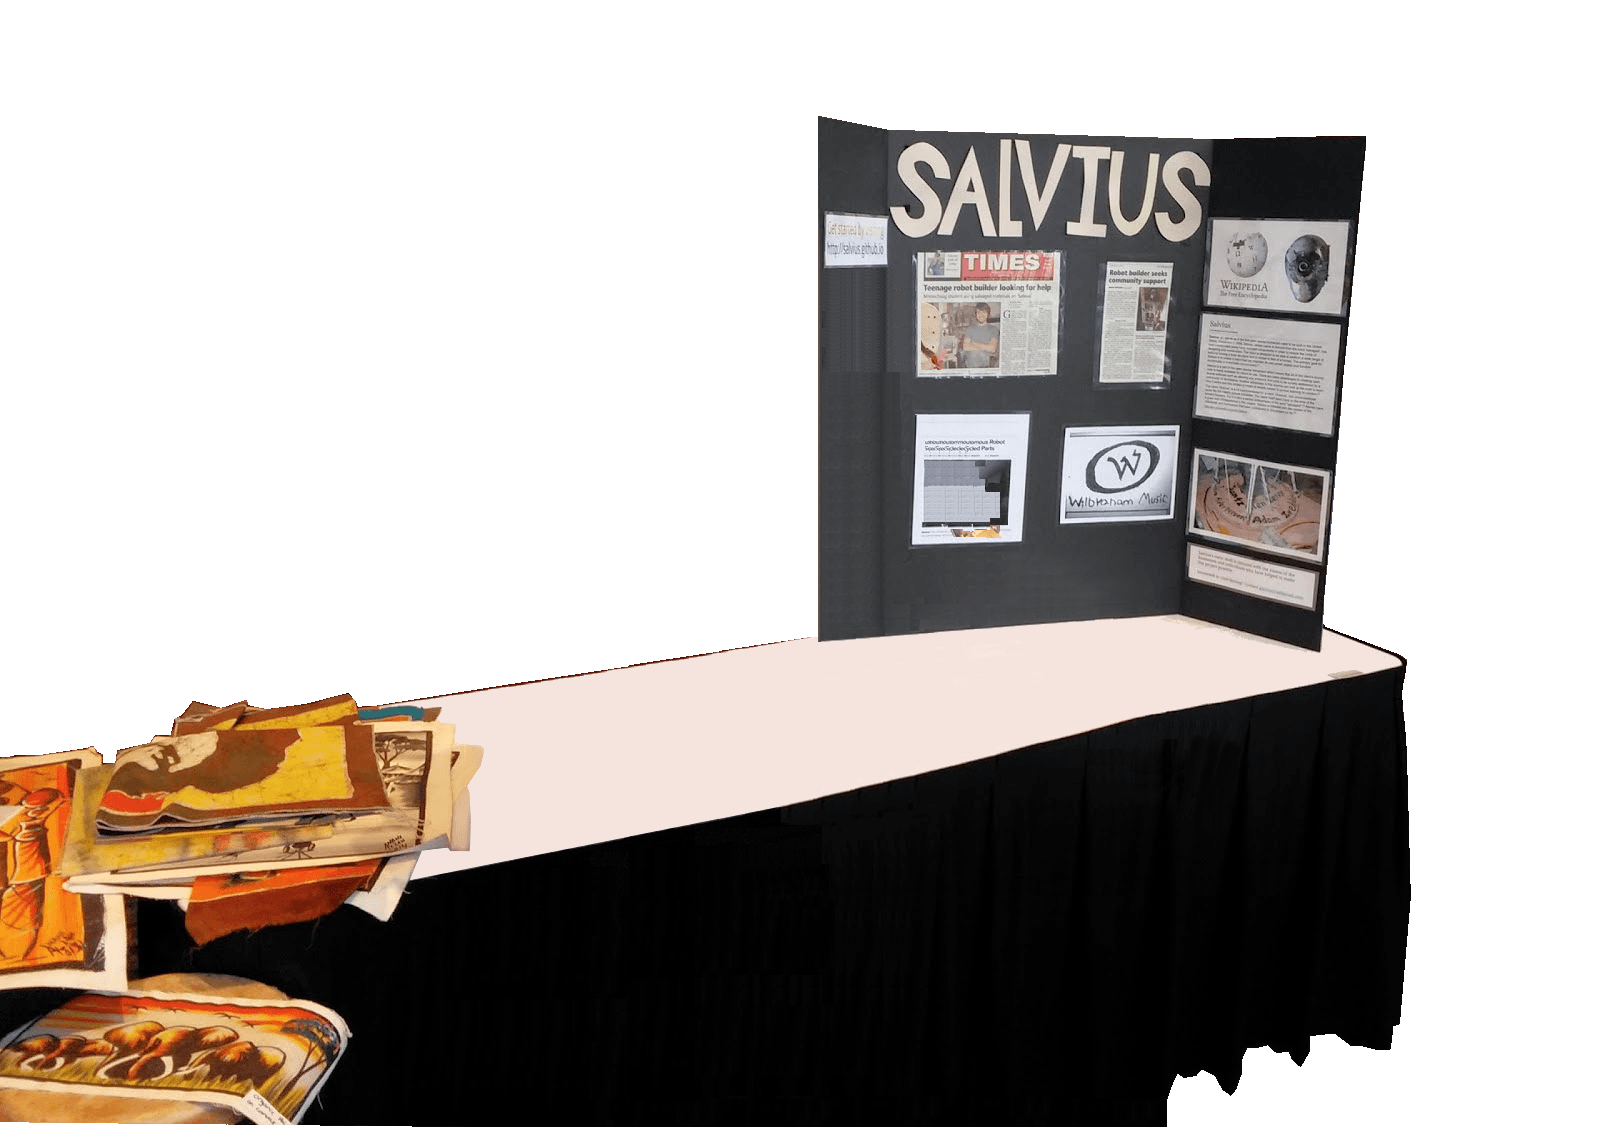 Salvius table